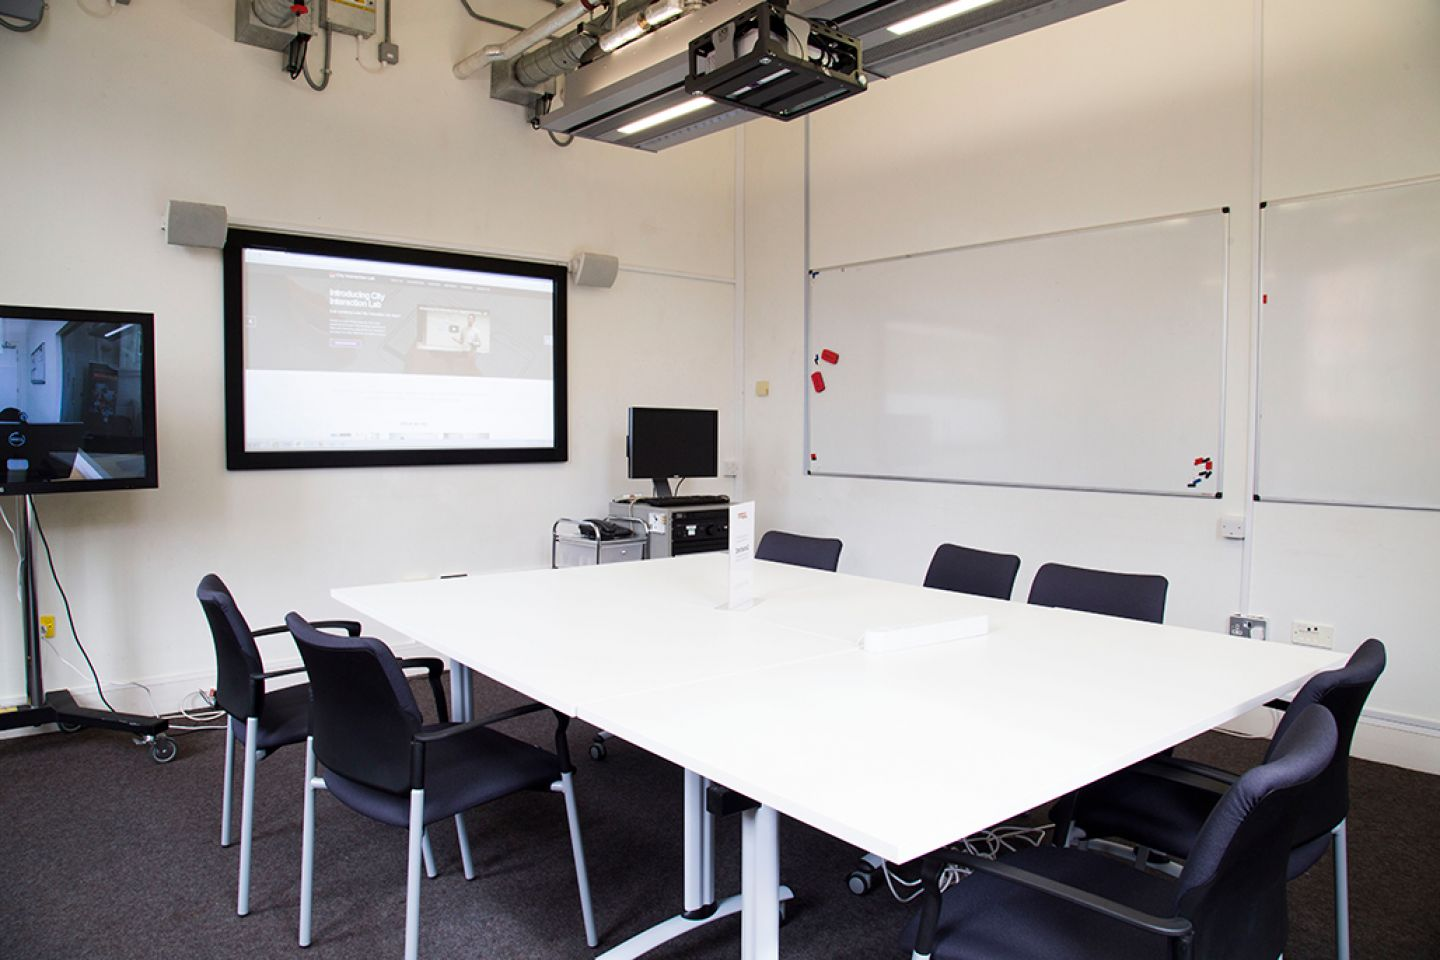 Interior of interaction lab featuring projectors and tables